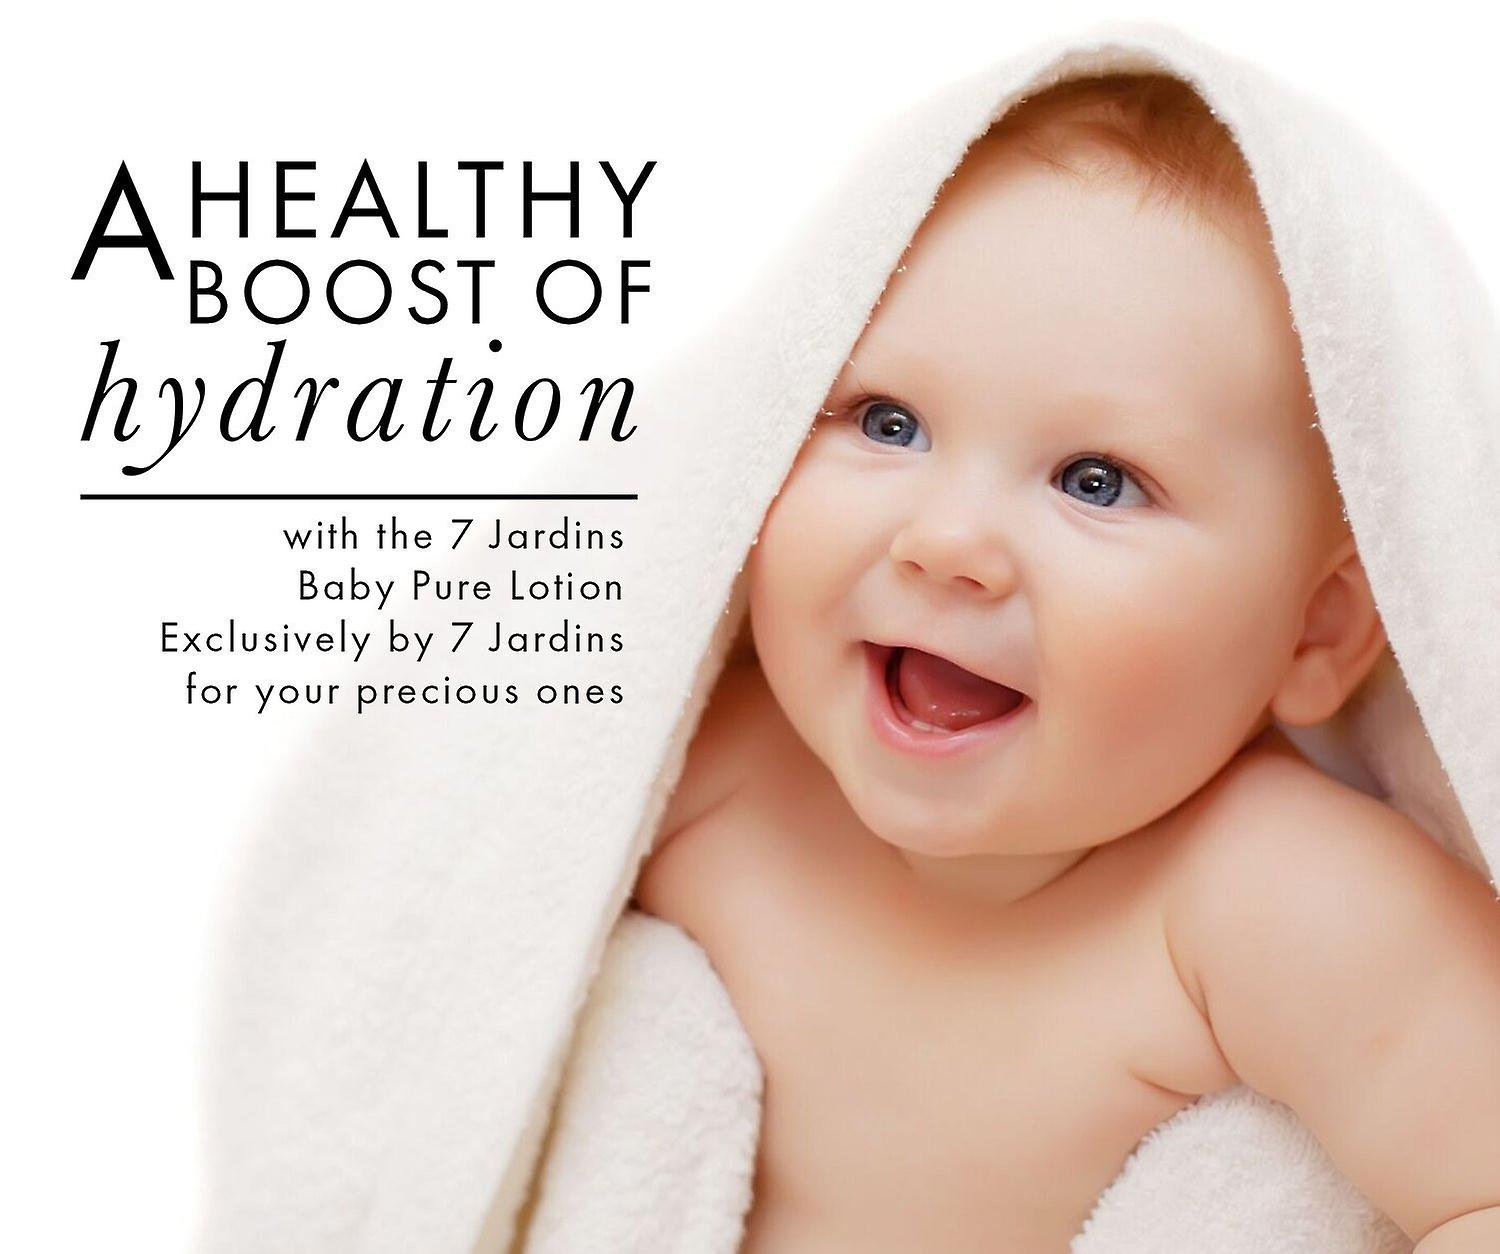 7 Jardins Unscented Natural Baby Pure Lotion - Daily Body Moisturizer for All Skin Types. 100% Safe and Sulfate Free - 8 oz.